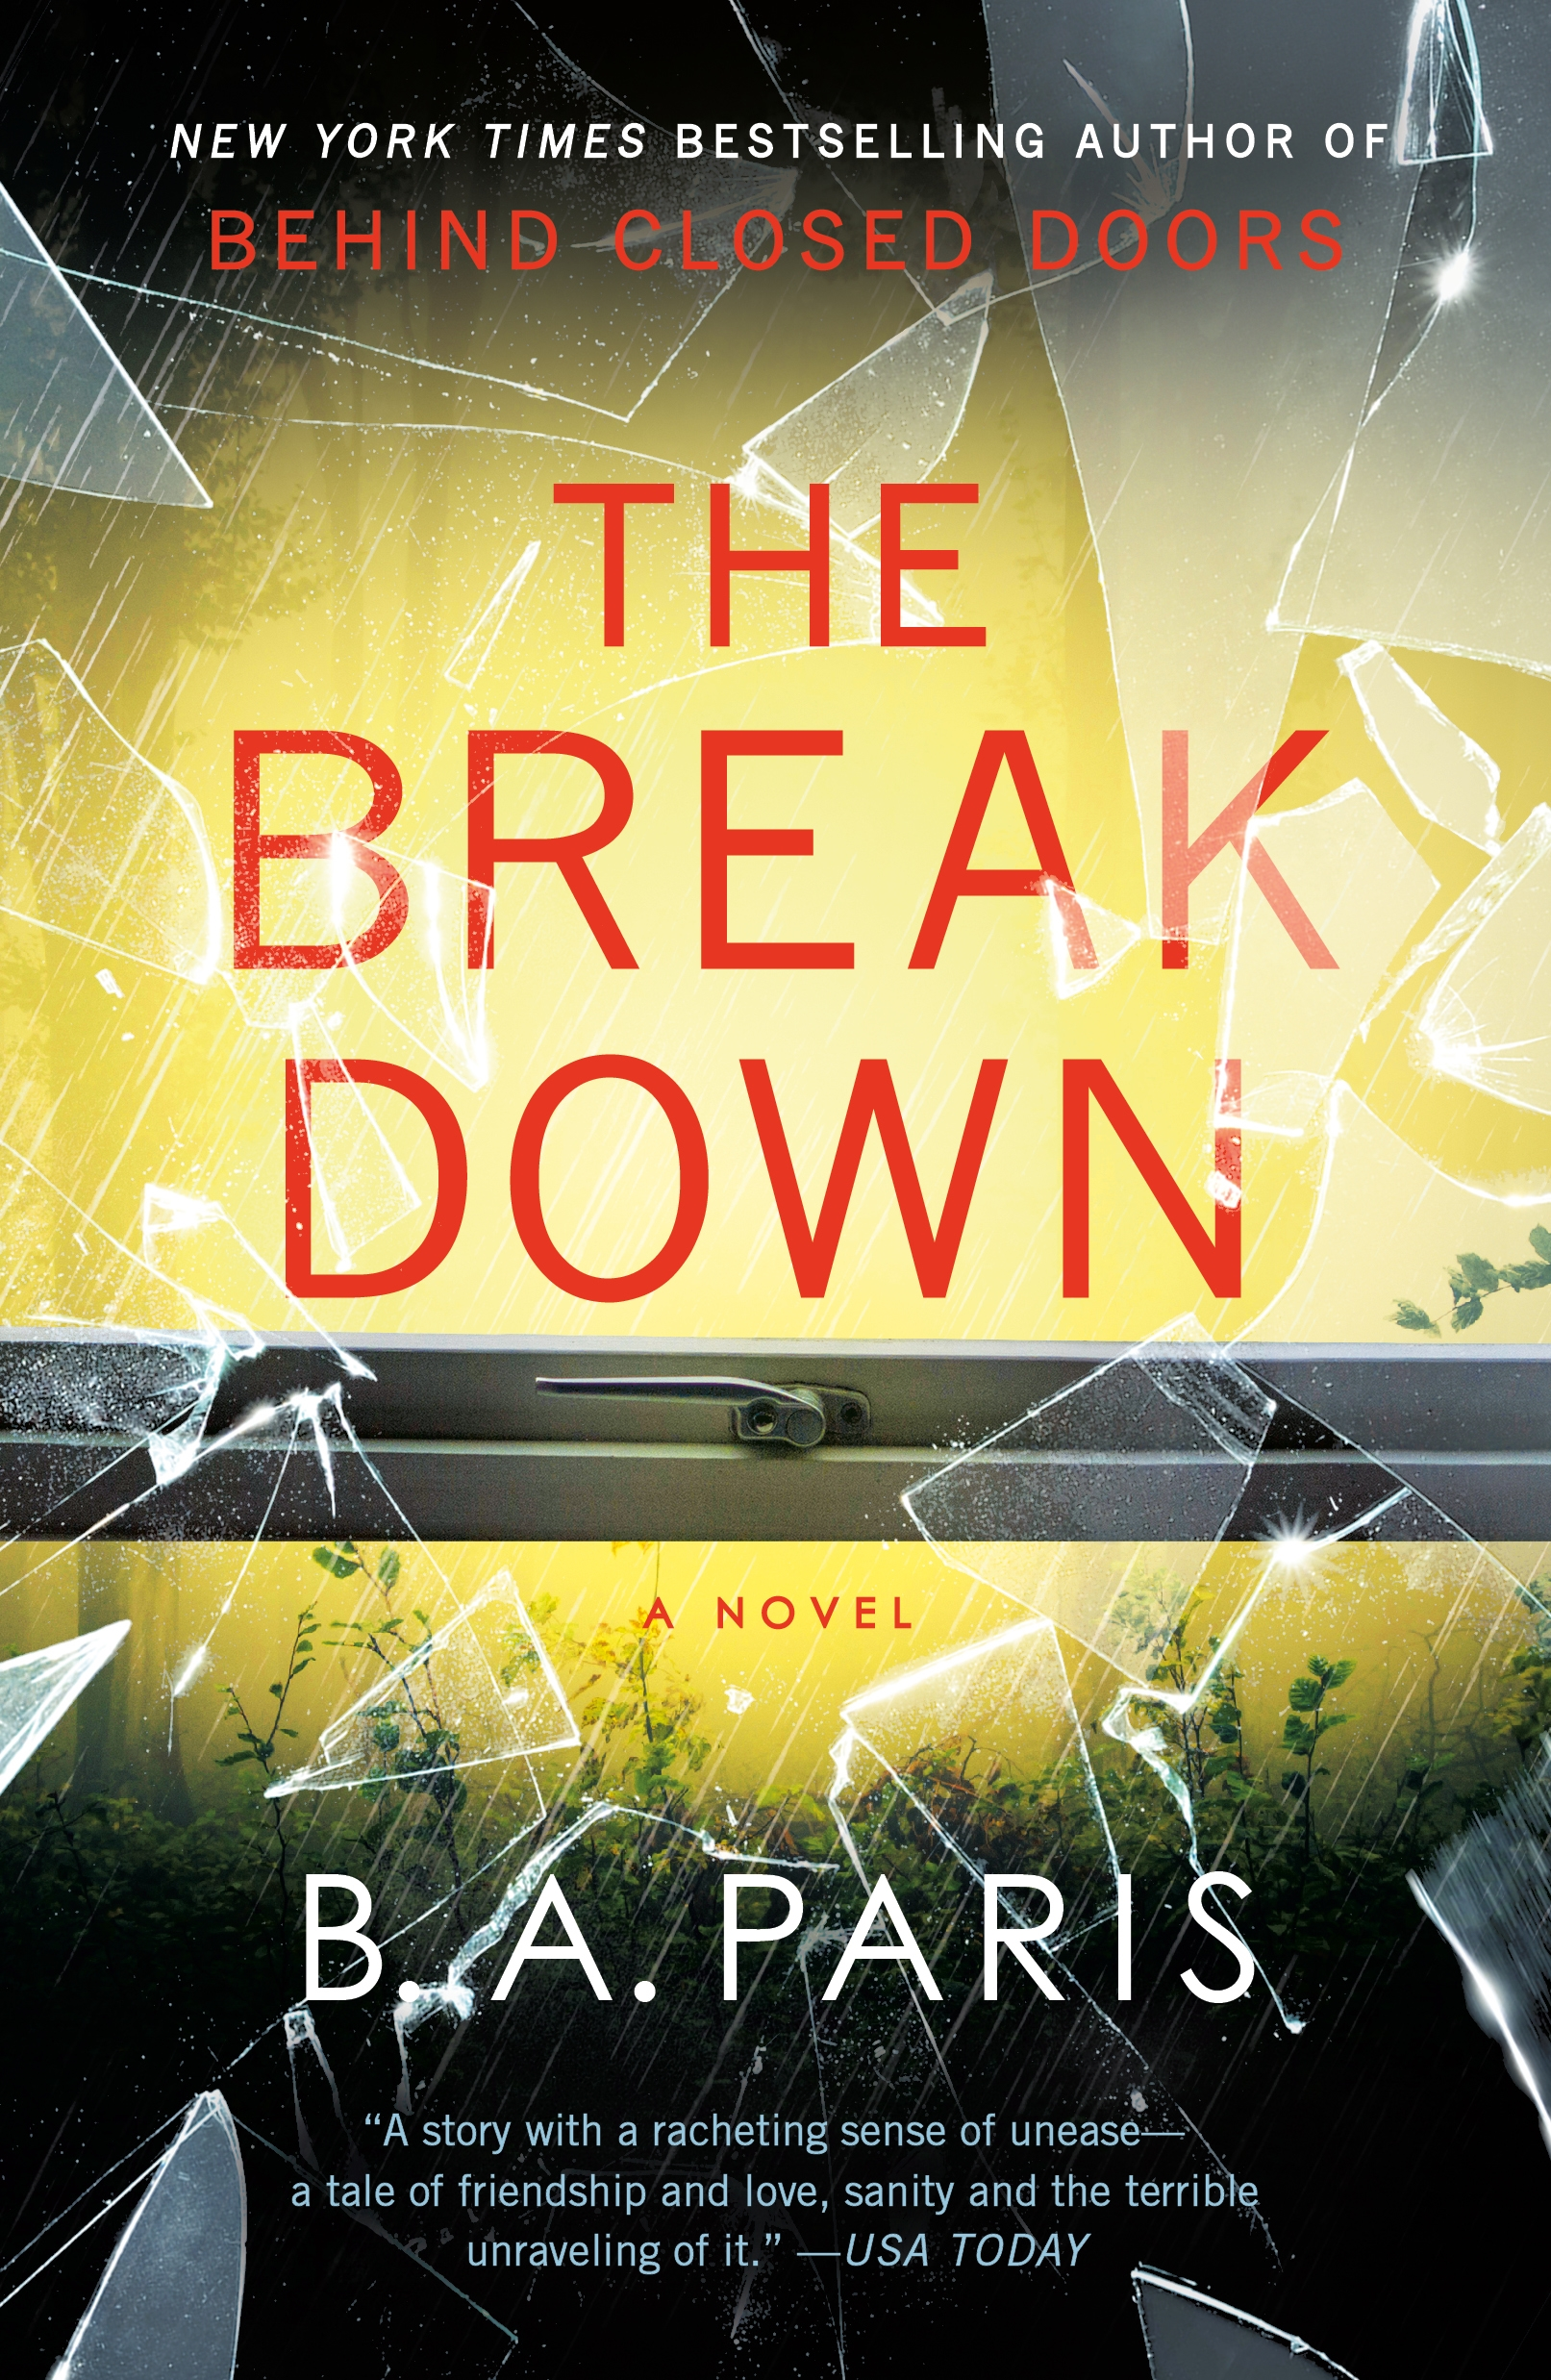 The Breakdown The 2017 Gripping Thriller from the Bestselling Author of Behind Closed Doors